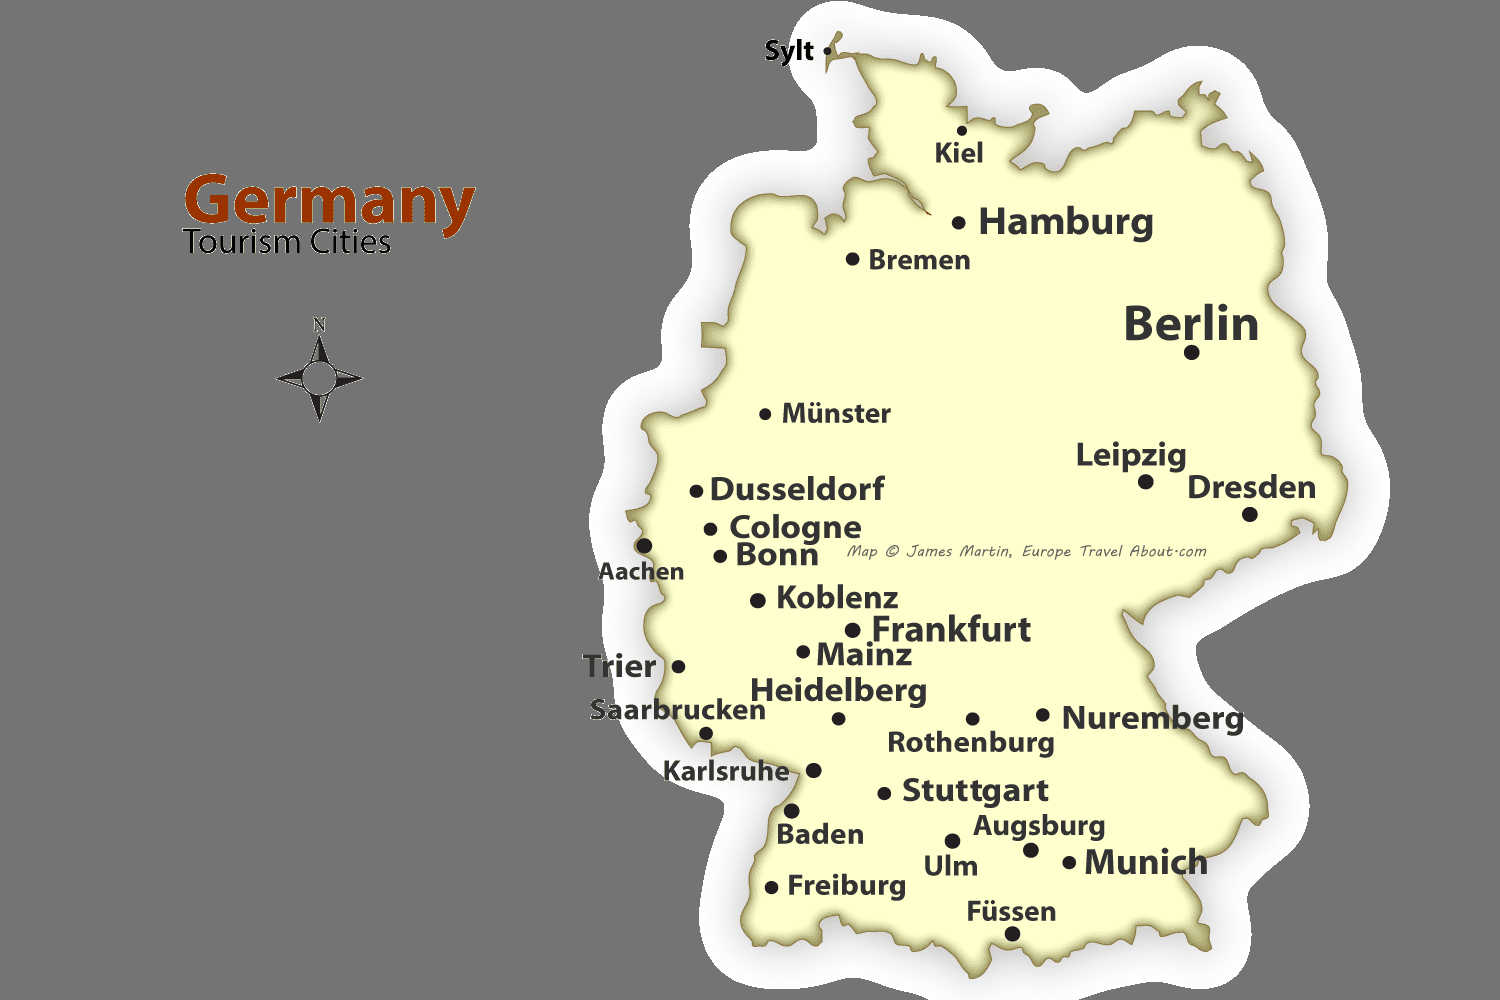 The Best Cities to Visit in Germany | Rail pass, City maps and City